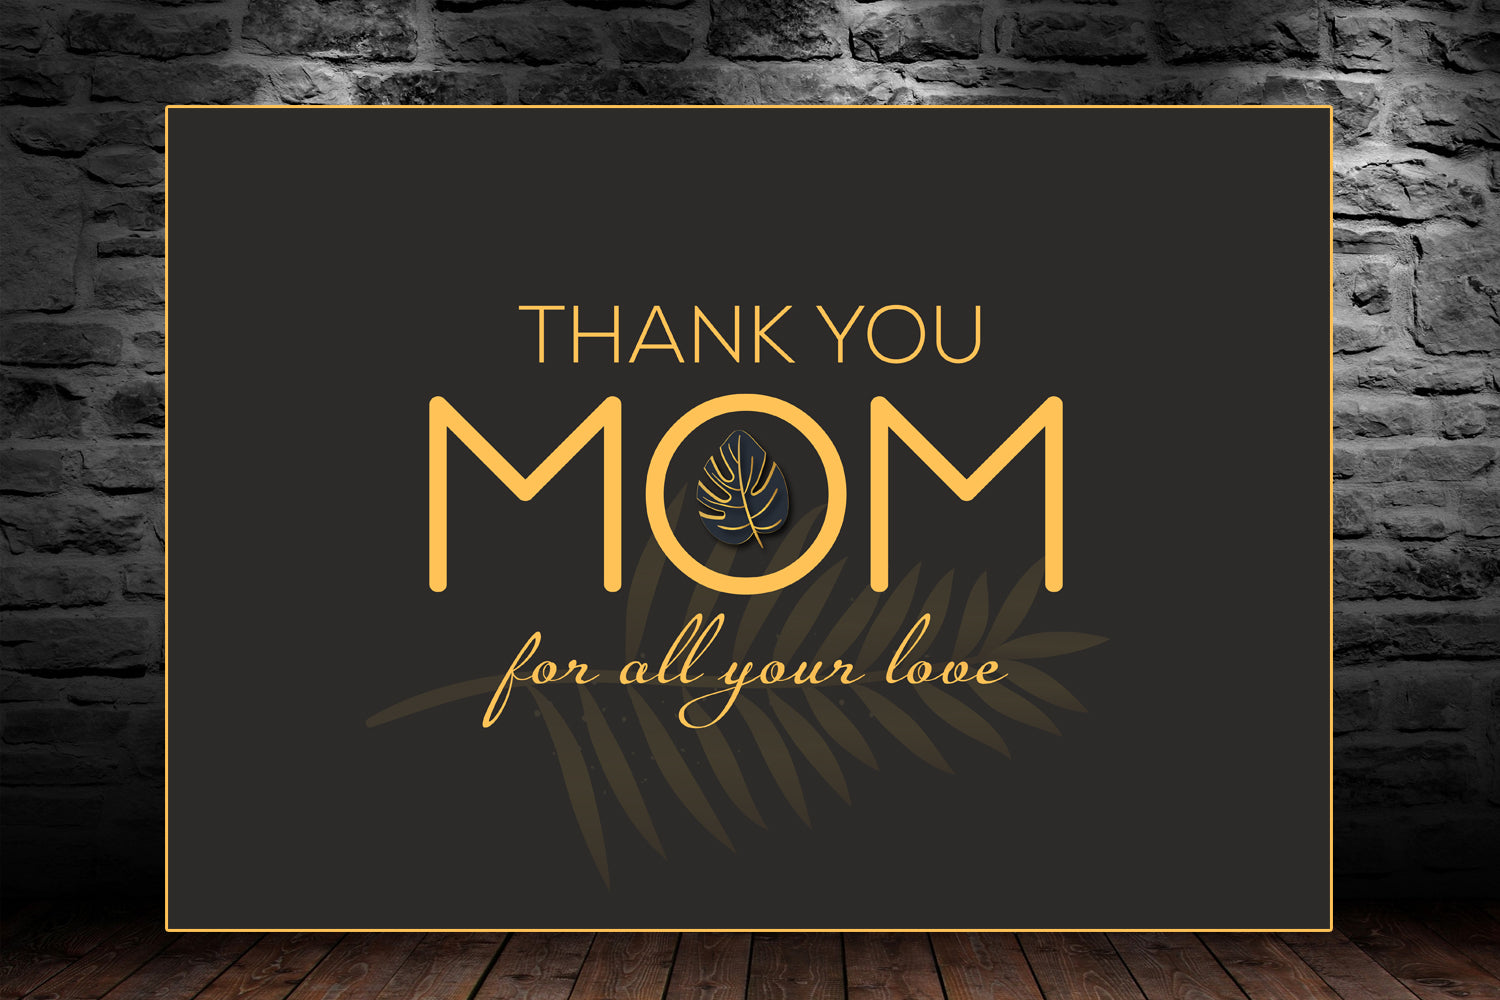 Thank You Mom for All Your Love, Mothers Day Gift, Digital Art, Printable & Editable